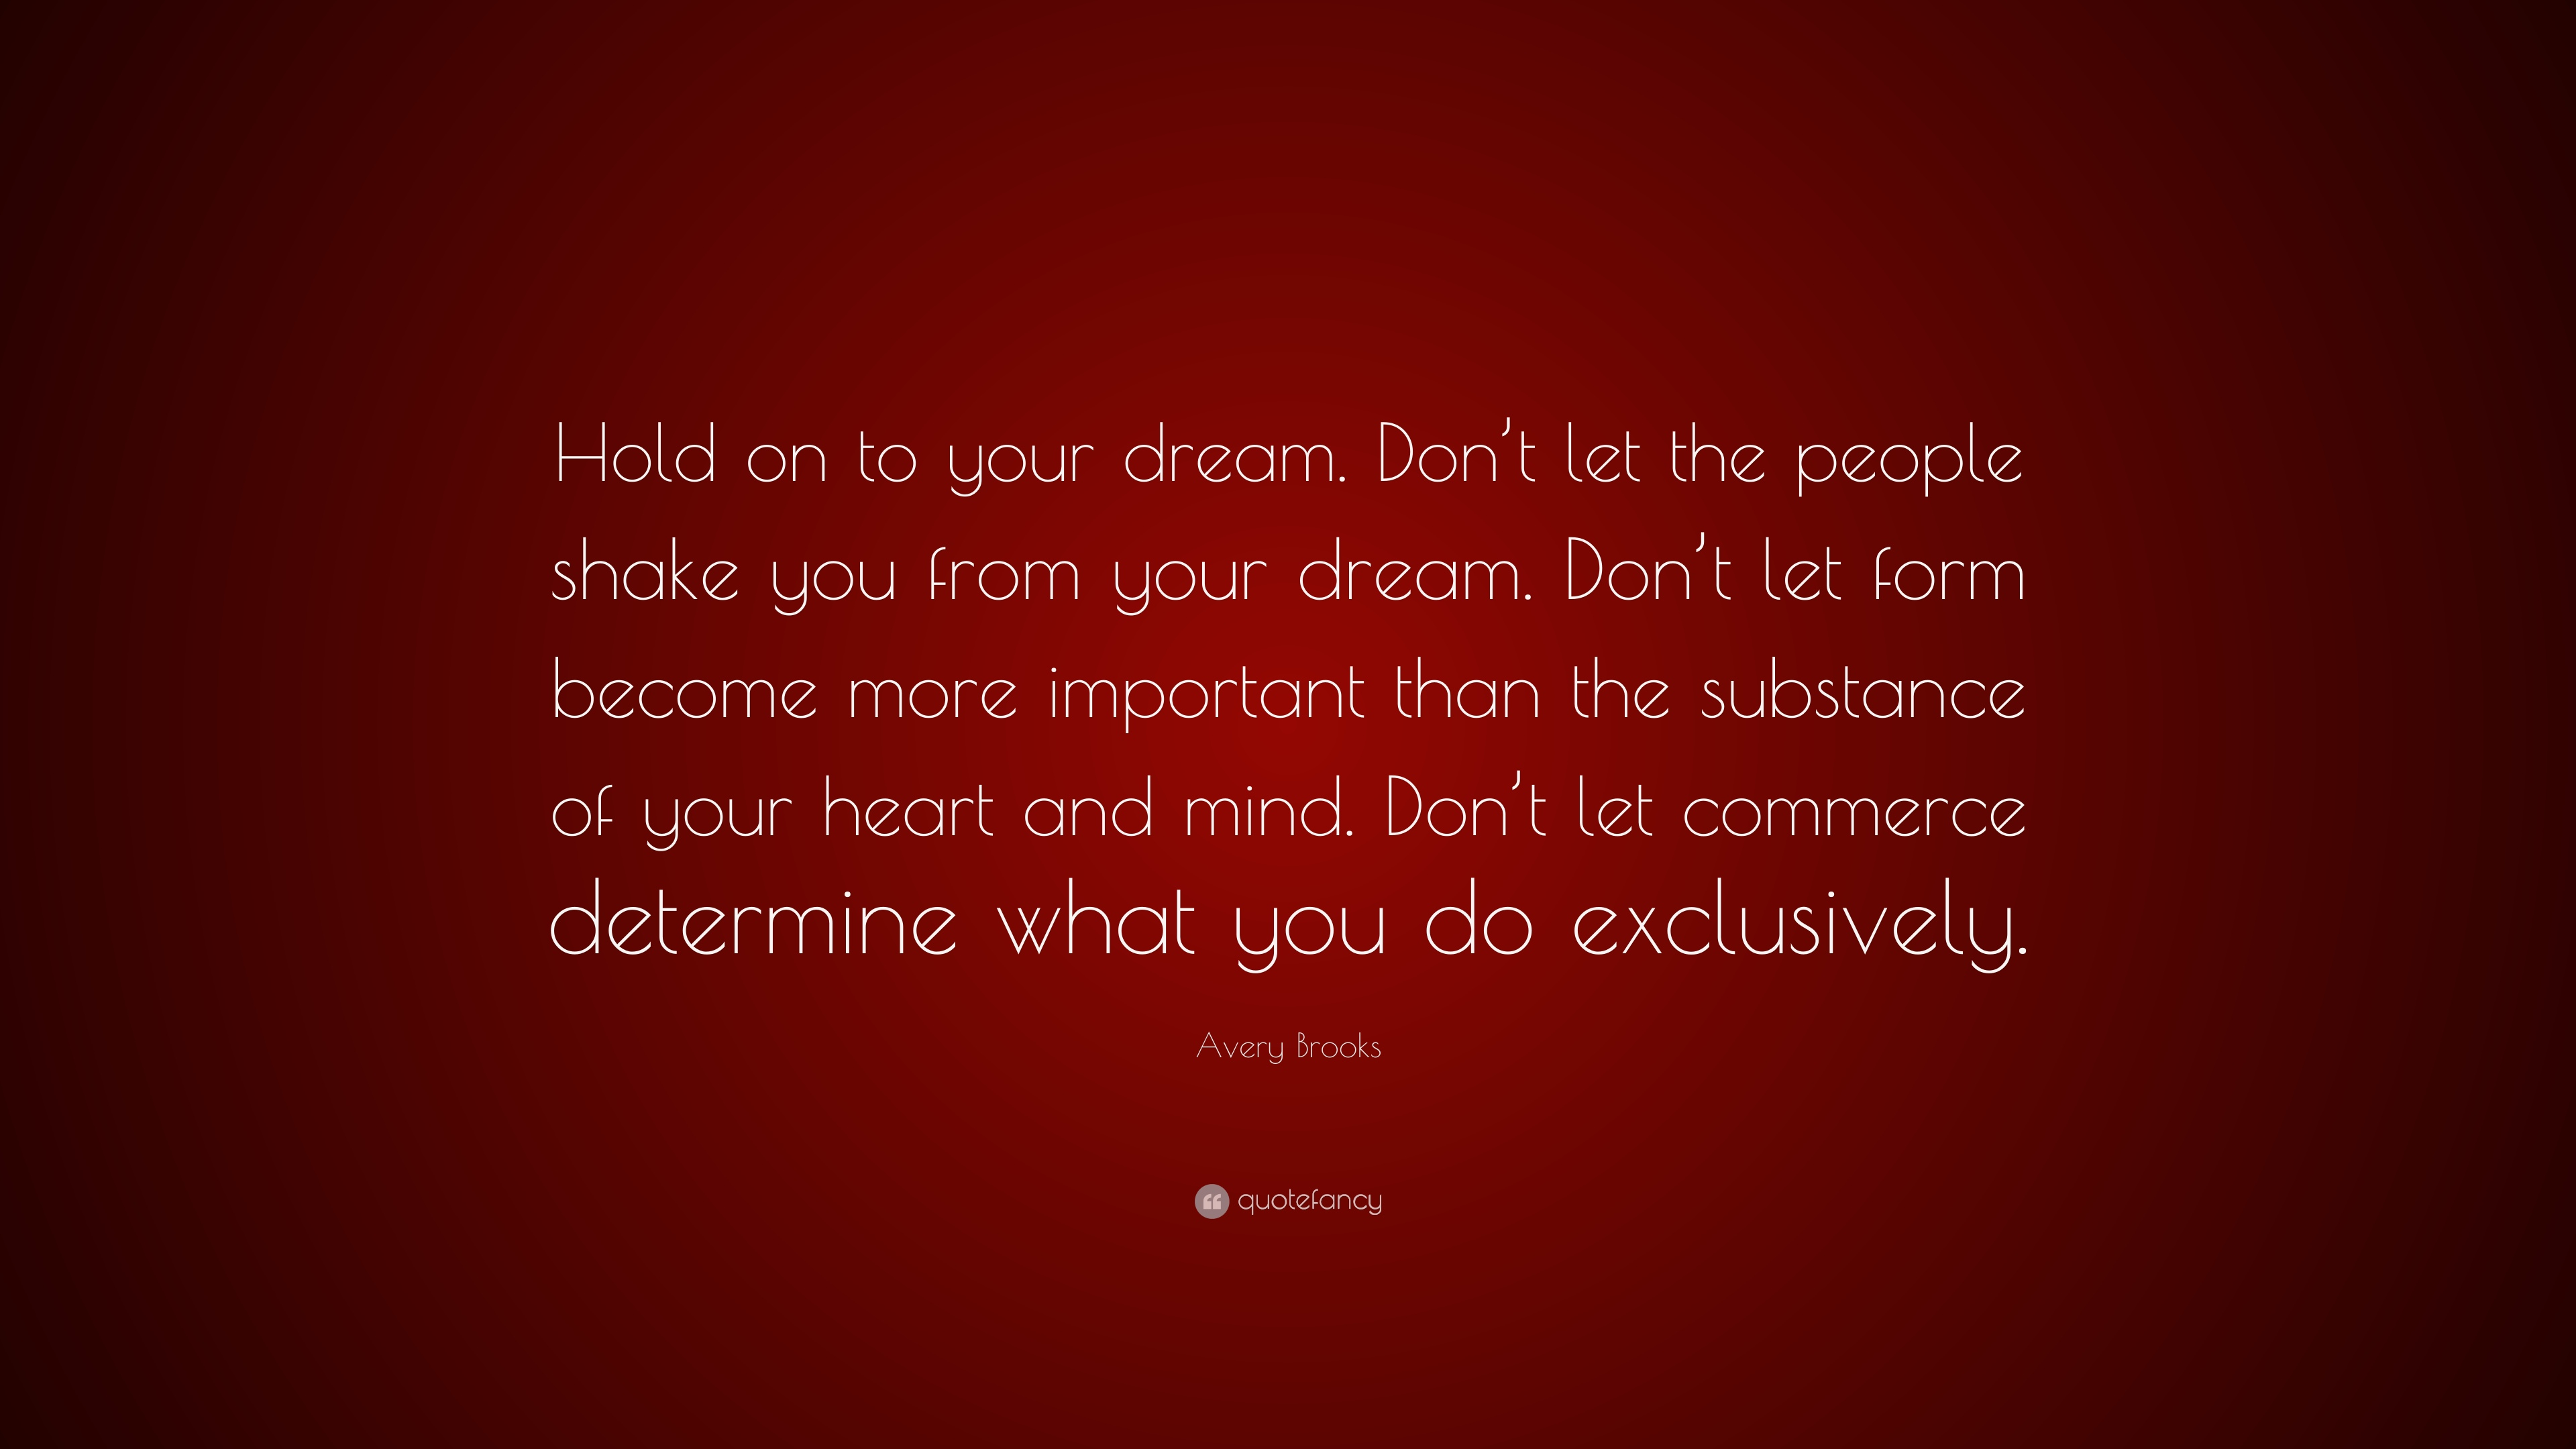 avery brooks quote hold on to your dream don t let the people